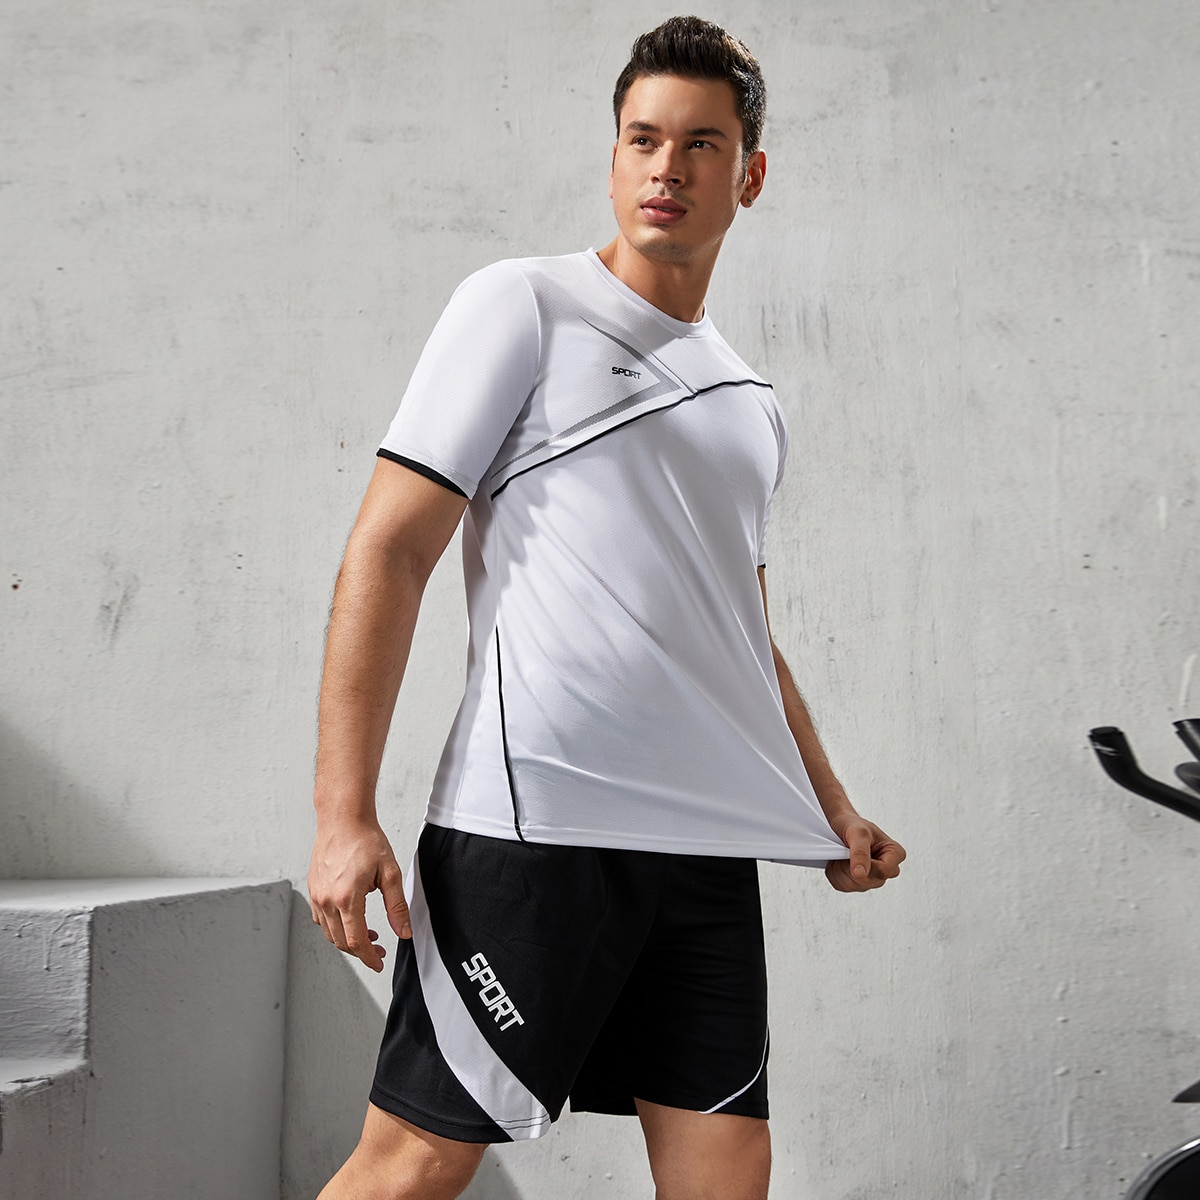 Men Letter Graphic Sports Tee With Slant Pocket Shorts